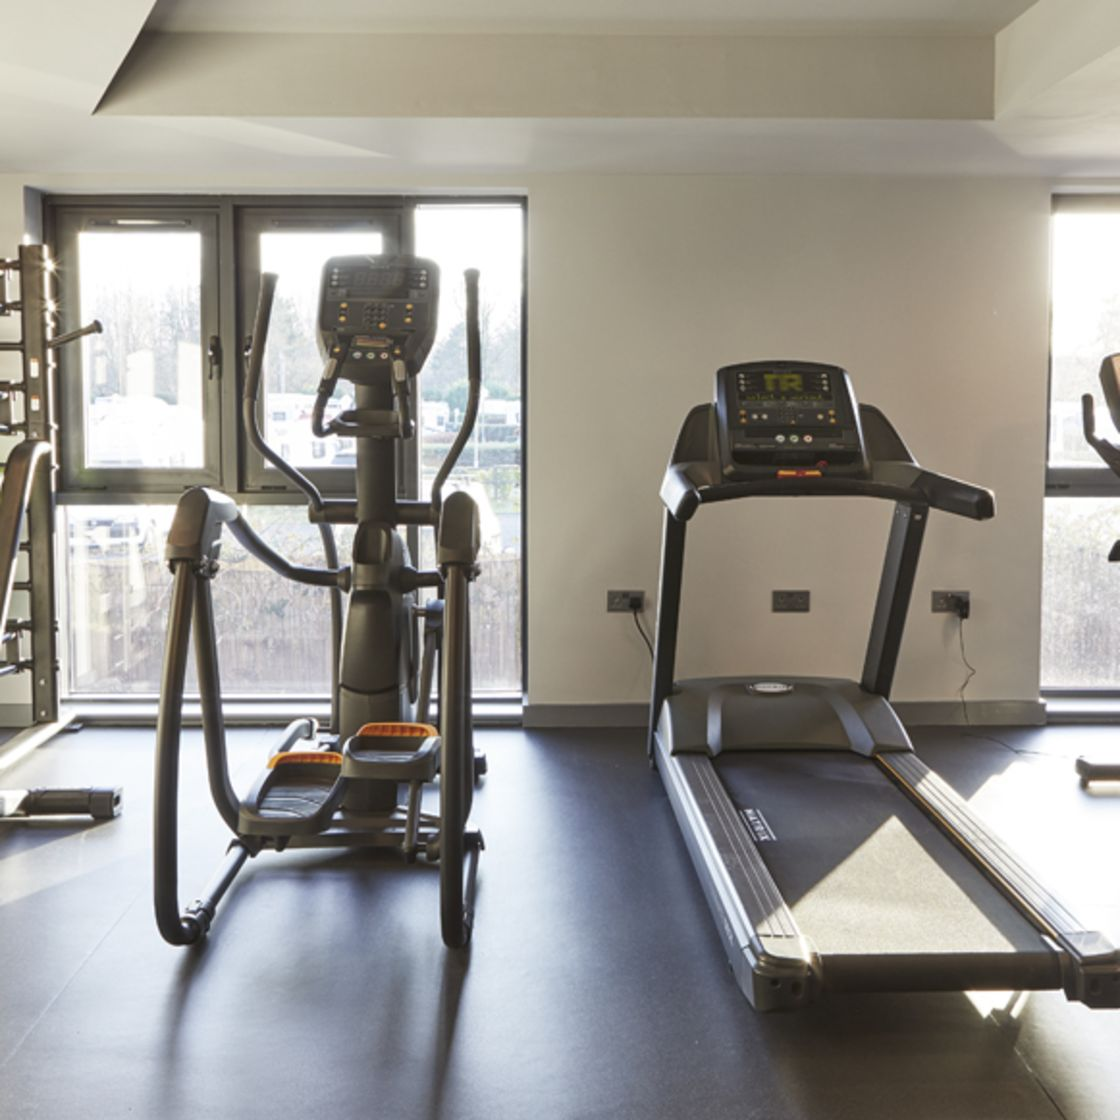 Treadmill and Crosstrainer in gym. IconInc @ Roomzzz. Student Accommodation in York